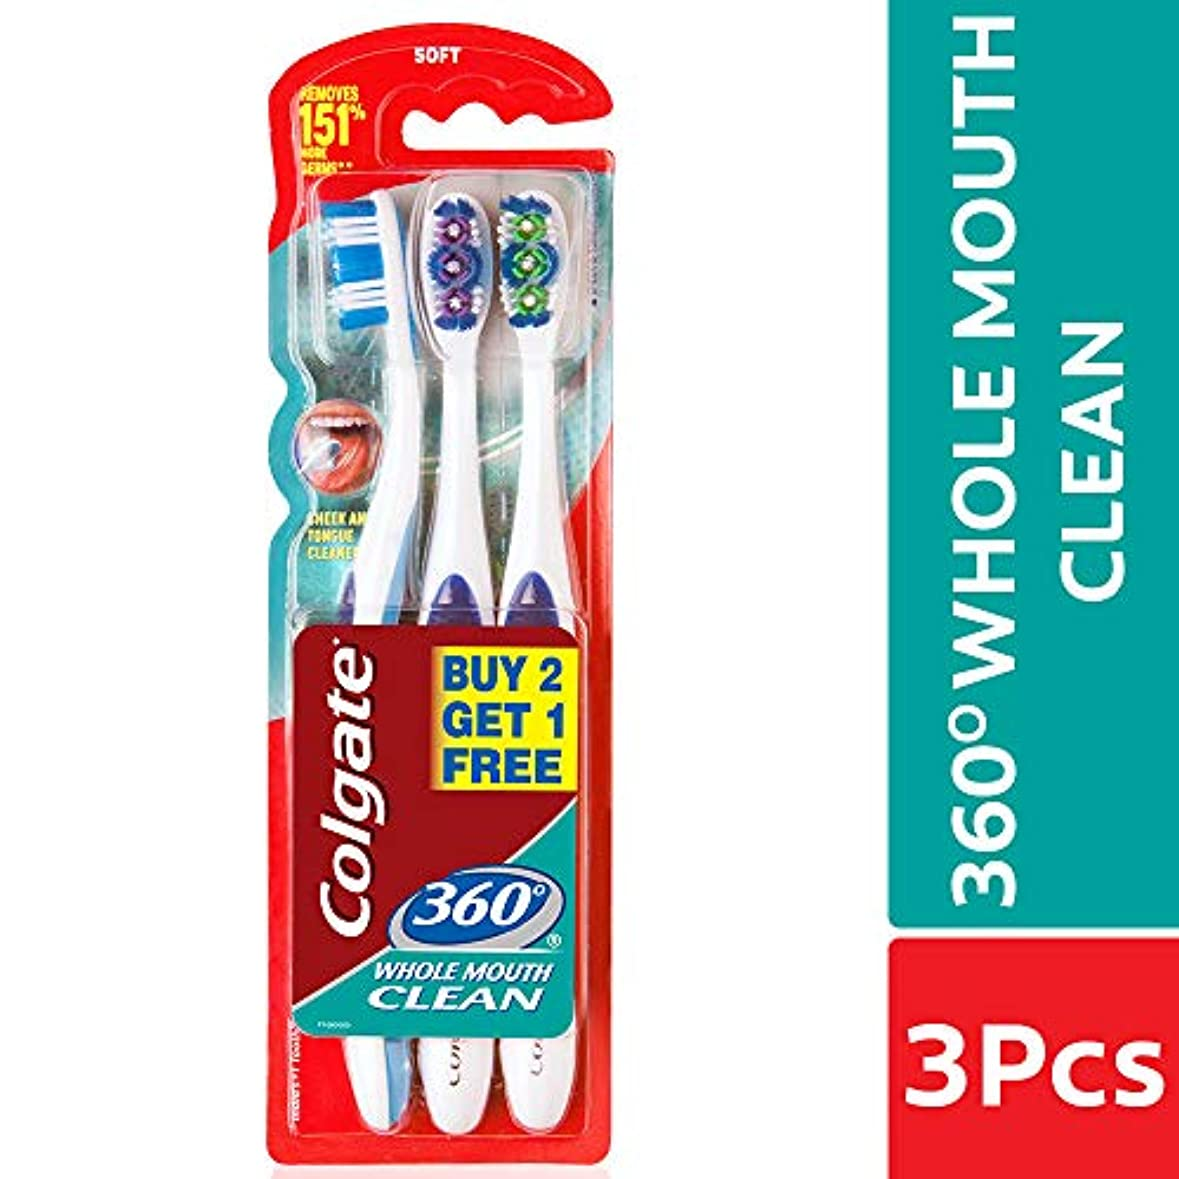 Colgate 360 whole mouth clean (MEDIUM) toothbrush (3pc pack)